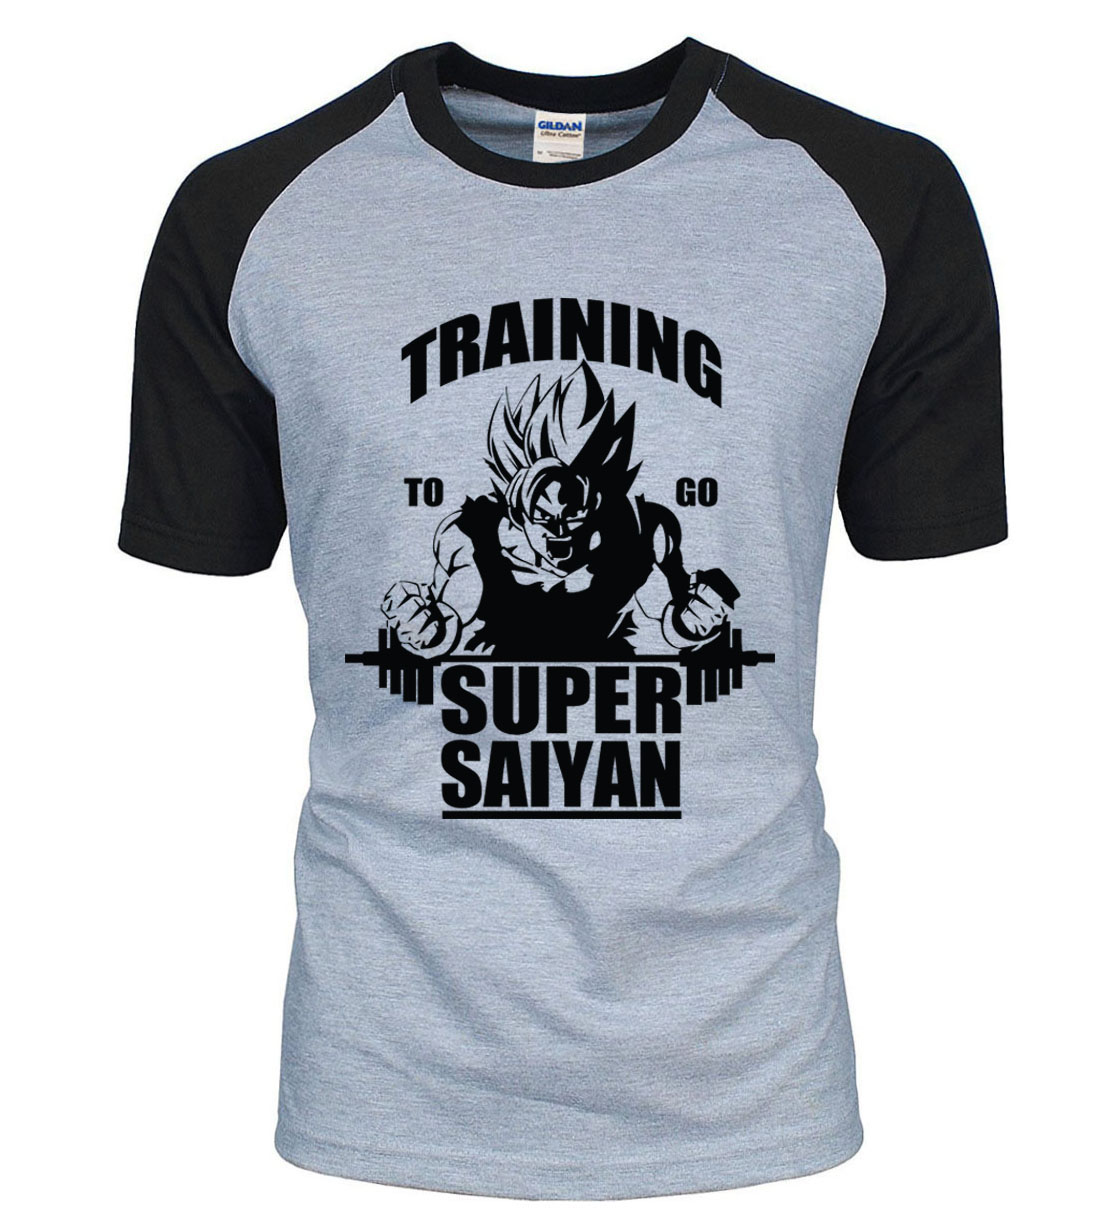 Adult Anime Dragon Ball Super Saiyan   t     shirt   2019 new summer 100% cotton high quality raglan men   t  -  shirt   casual top tees S-2XL